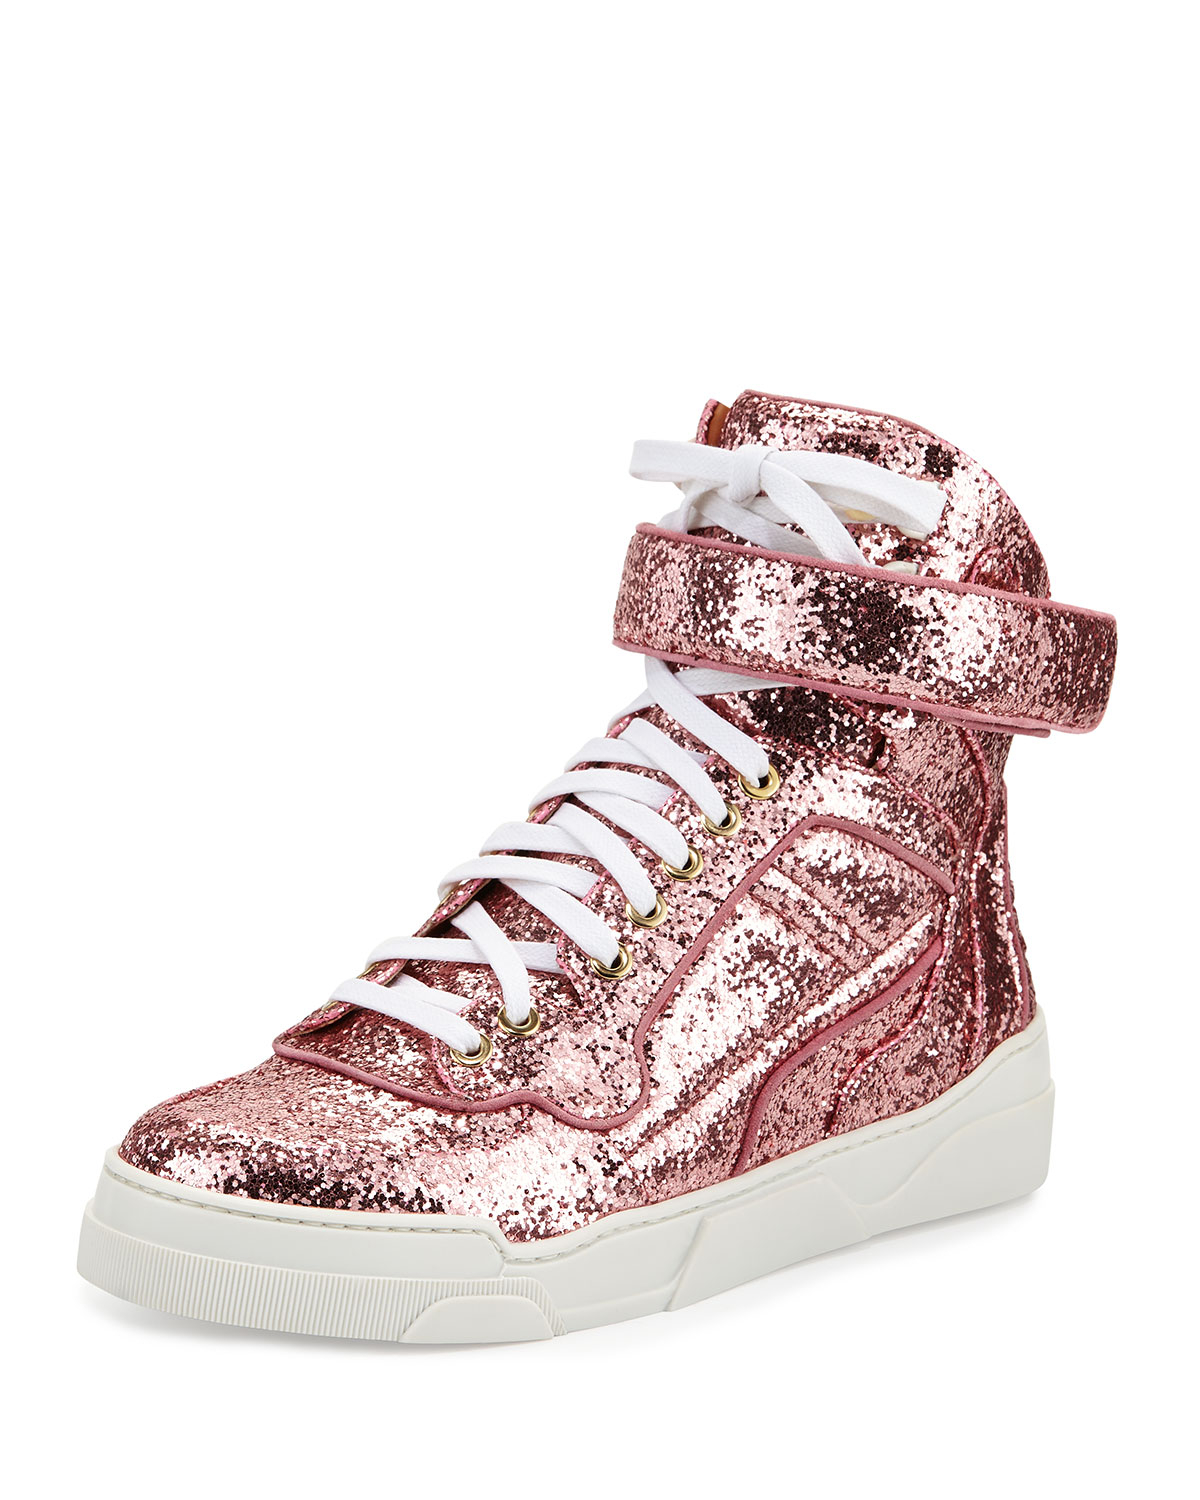 Givenchy Leather Glitter High-top